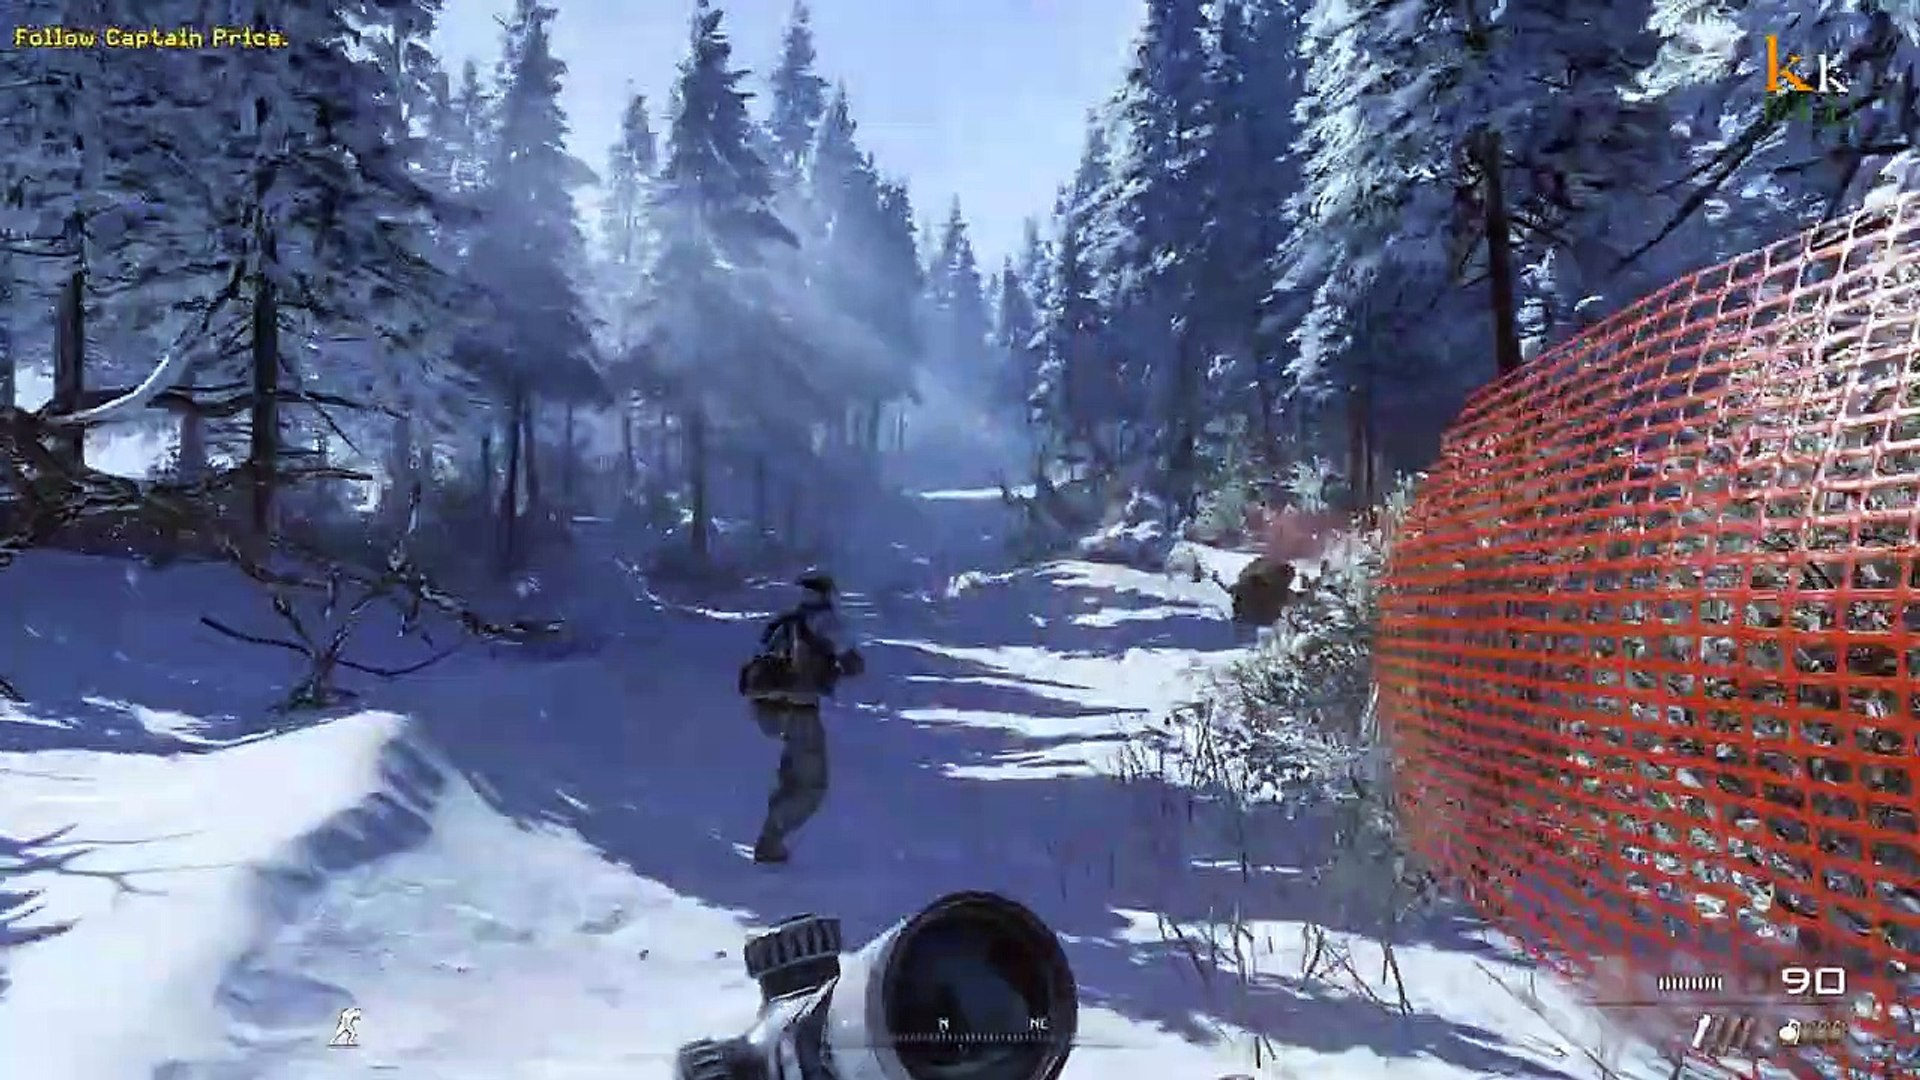 Call Of Duty Modern Warfare 2 Campaign Remastered Gameplay Walkthrough Part 12 Video Dailymotion